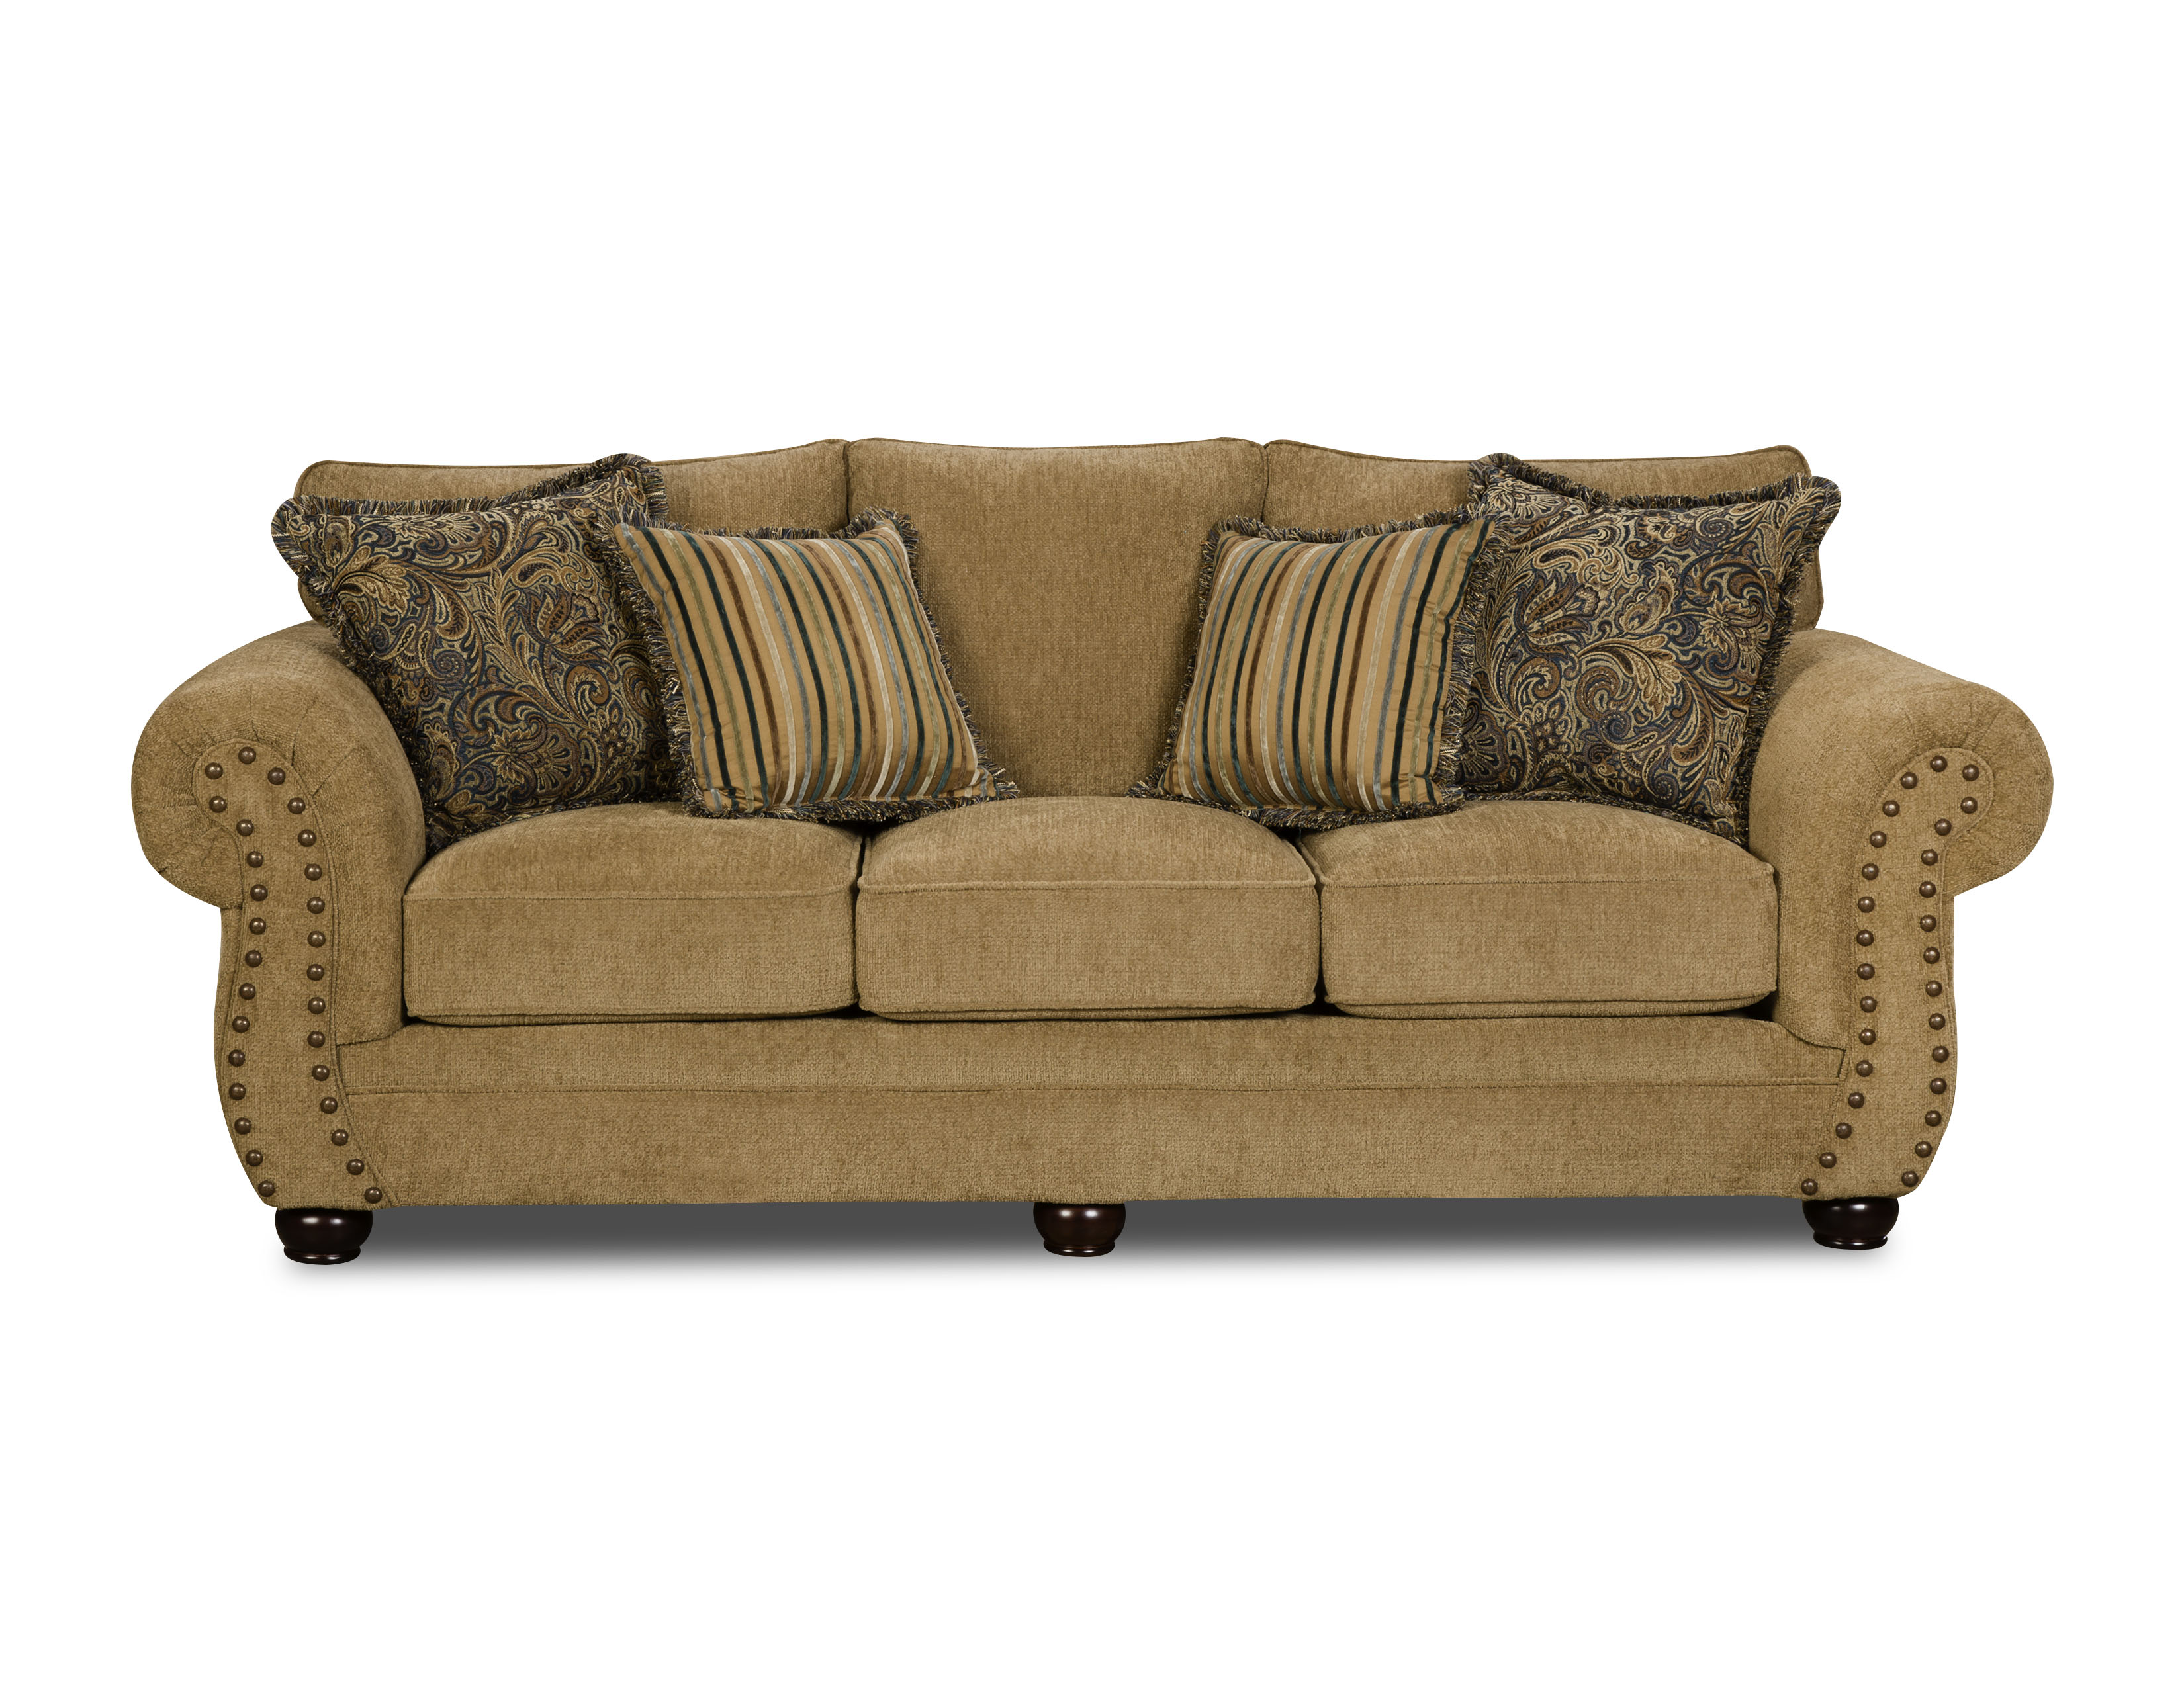 velvet 5in1 air sofa bed reviews tan faux leather sleeper simmons upholstery victoria antique